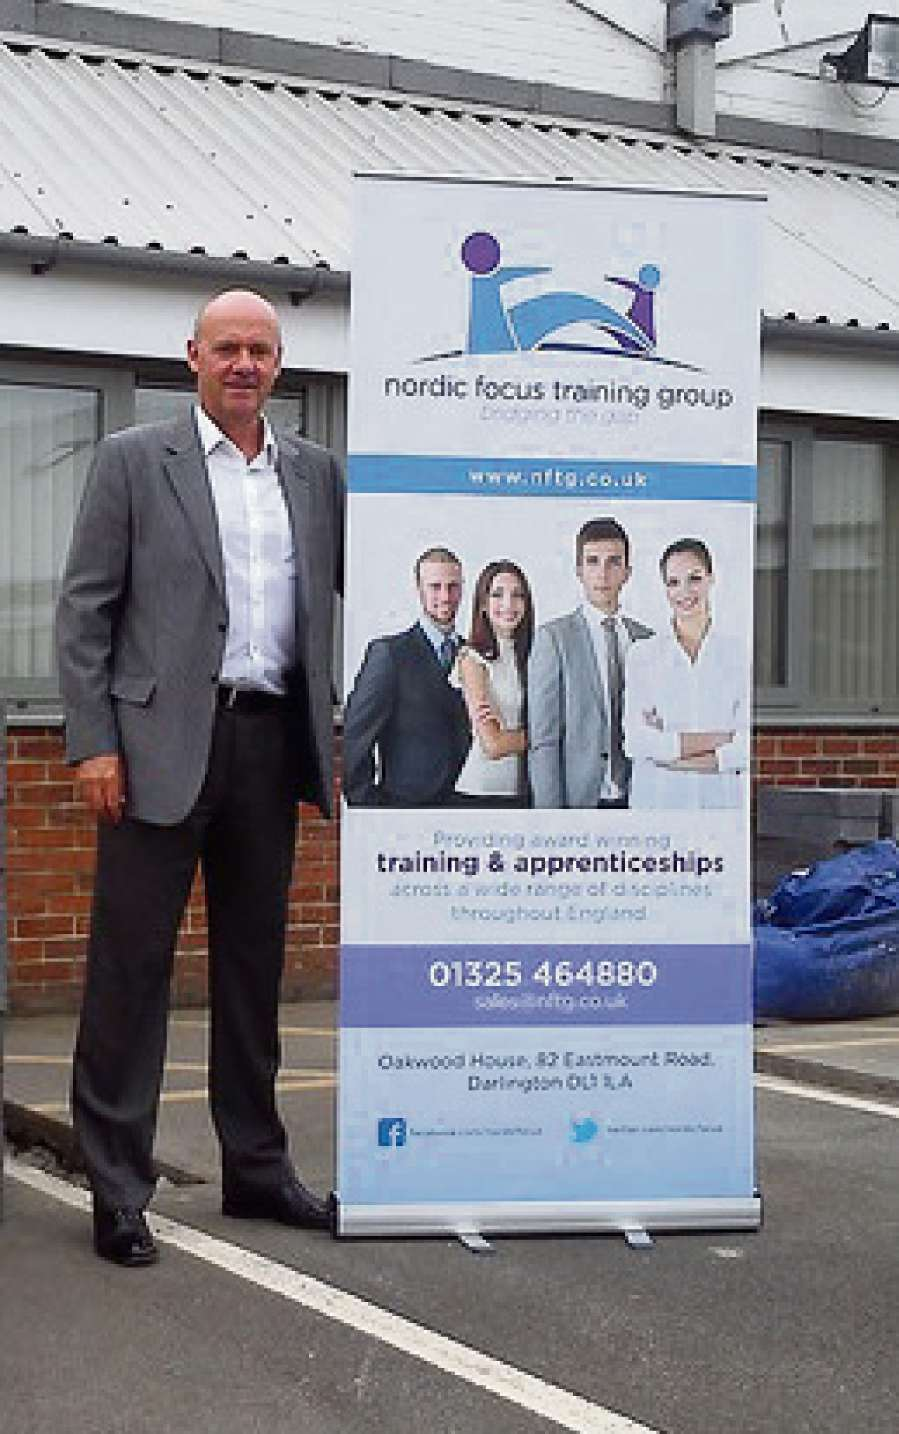 NEW ACADEMY: Peter Robinson, chairman of the Nordic Focus Training Group, outside their new training academy